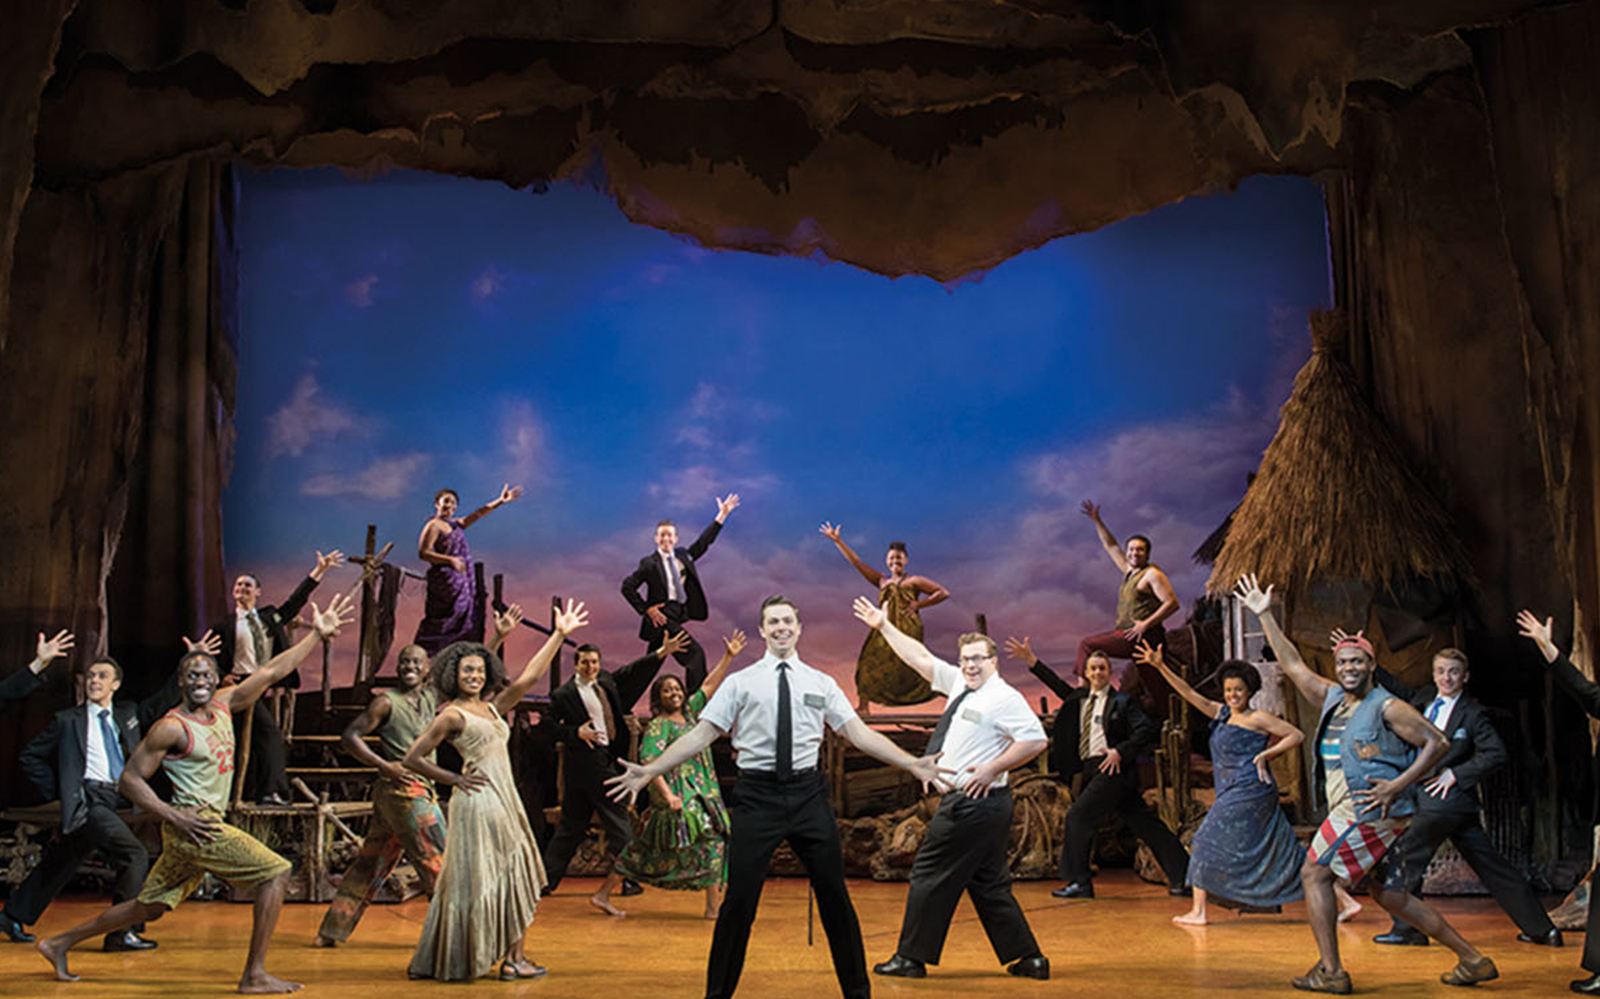 42f94967 0699 4d33 a186 7ca759336433 2843 london book of mormon 02